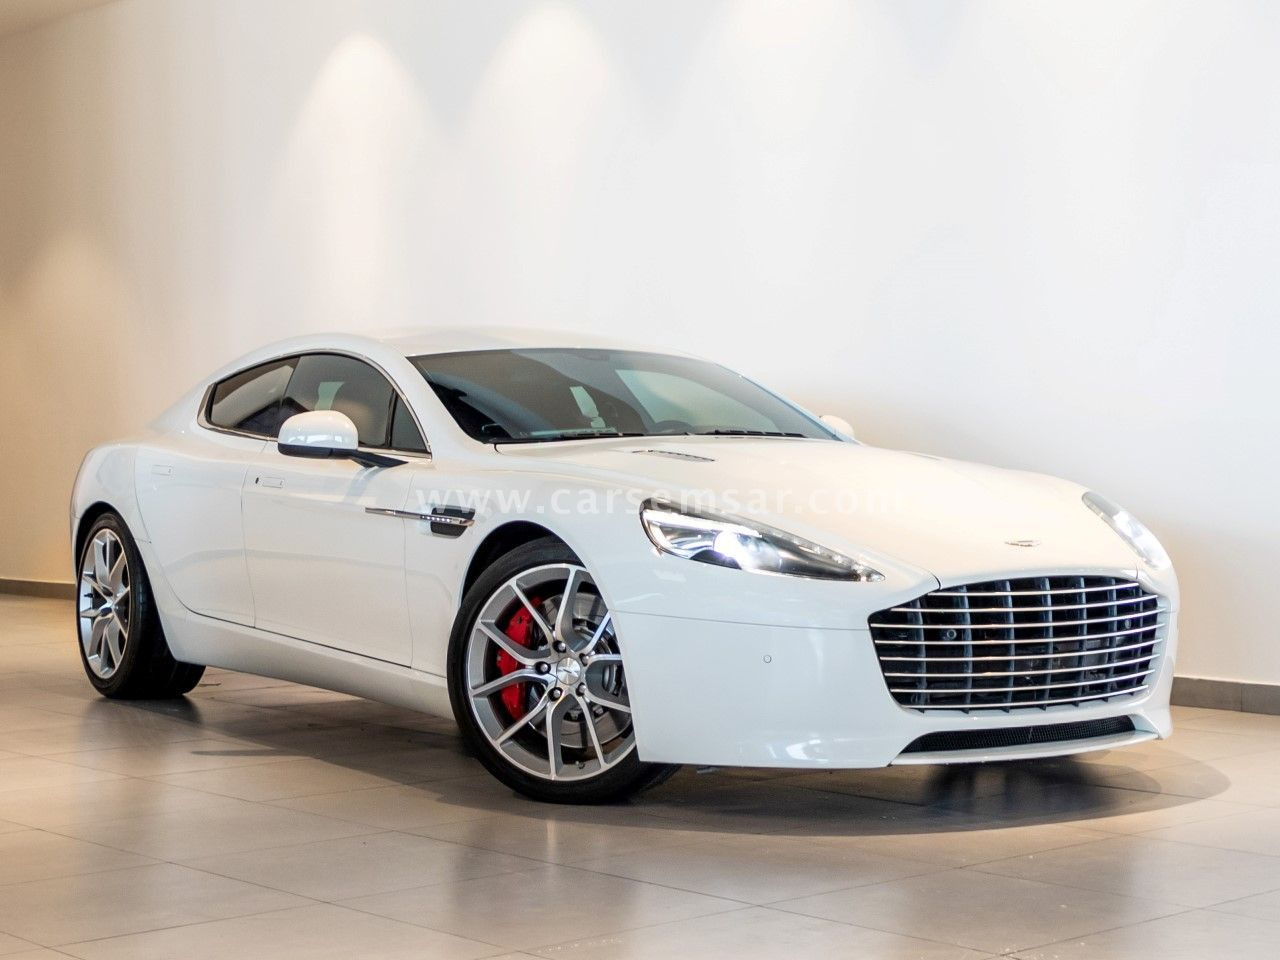 2015 Aston Martin Rapide S For Sale In Qatar New And Used Cars For Sale In Qatar